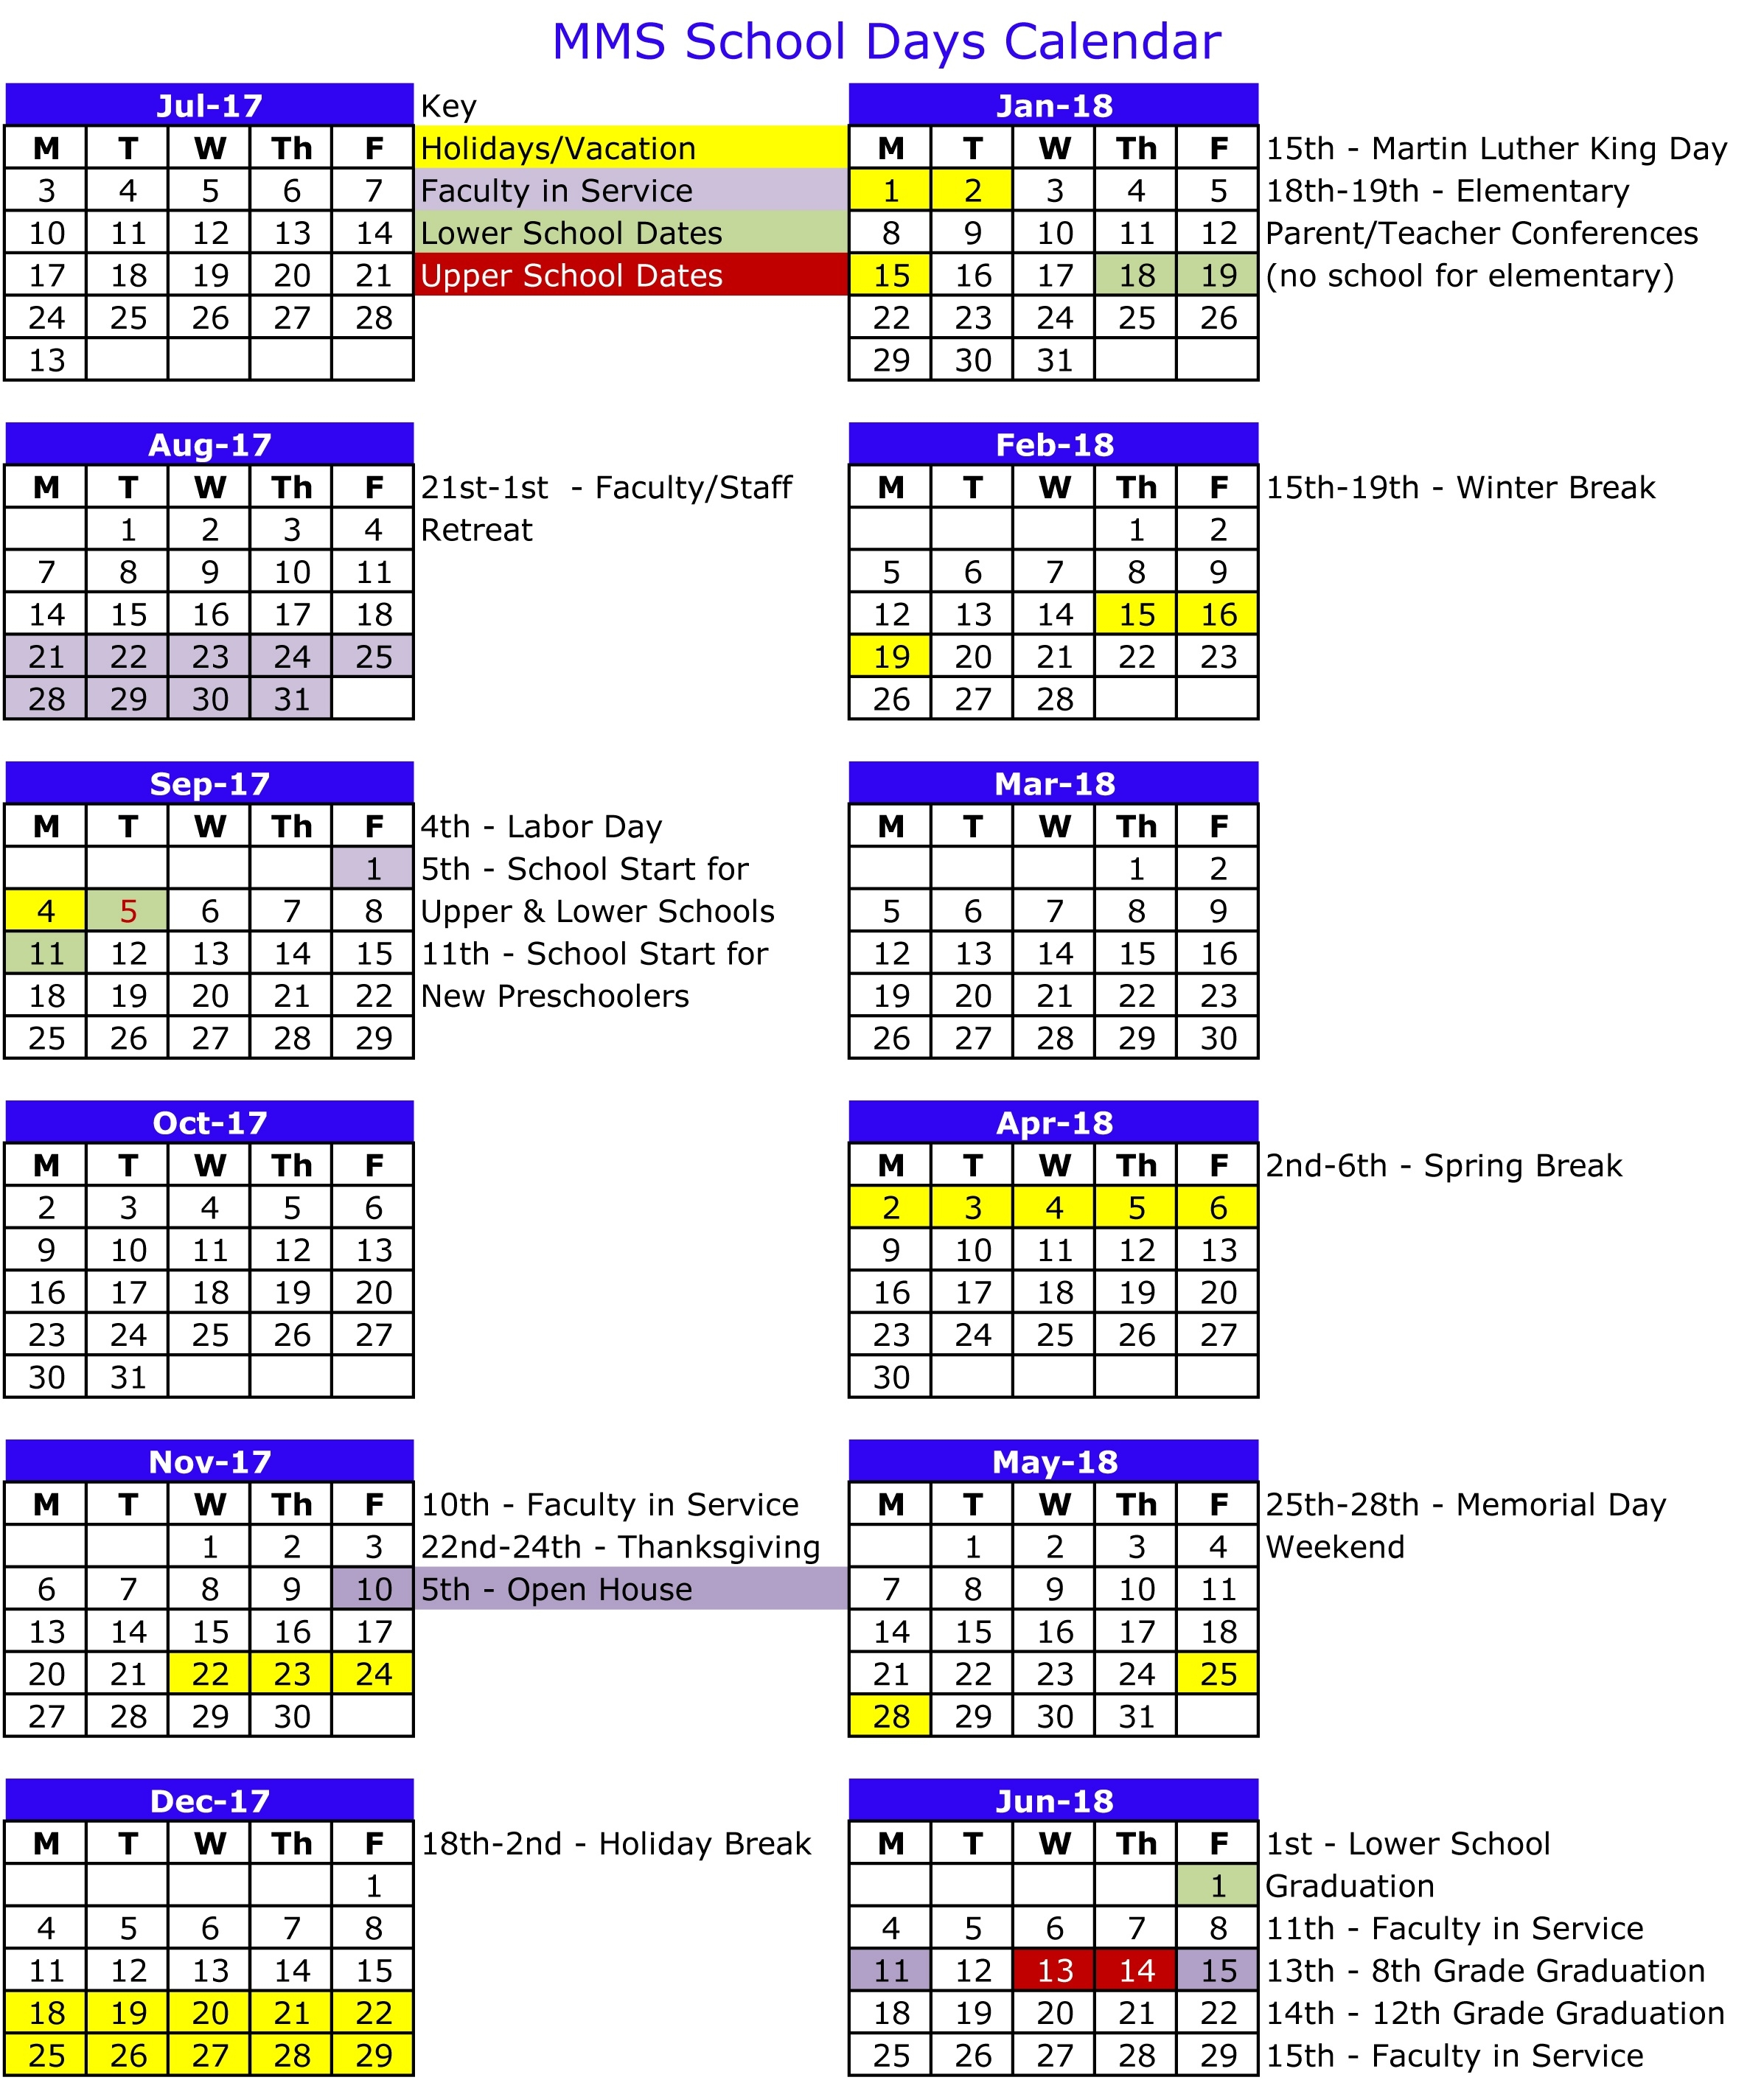 2017-18 School Days Calendar : Mount Madonna School_Calendar Of School Days